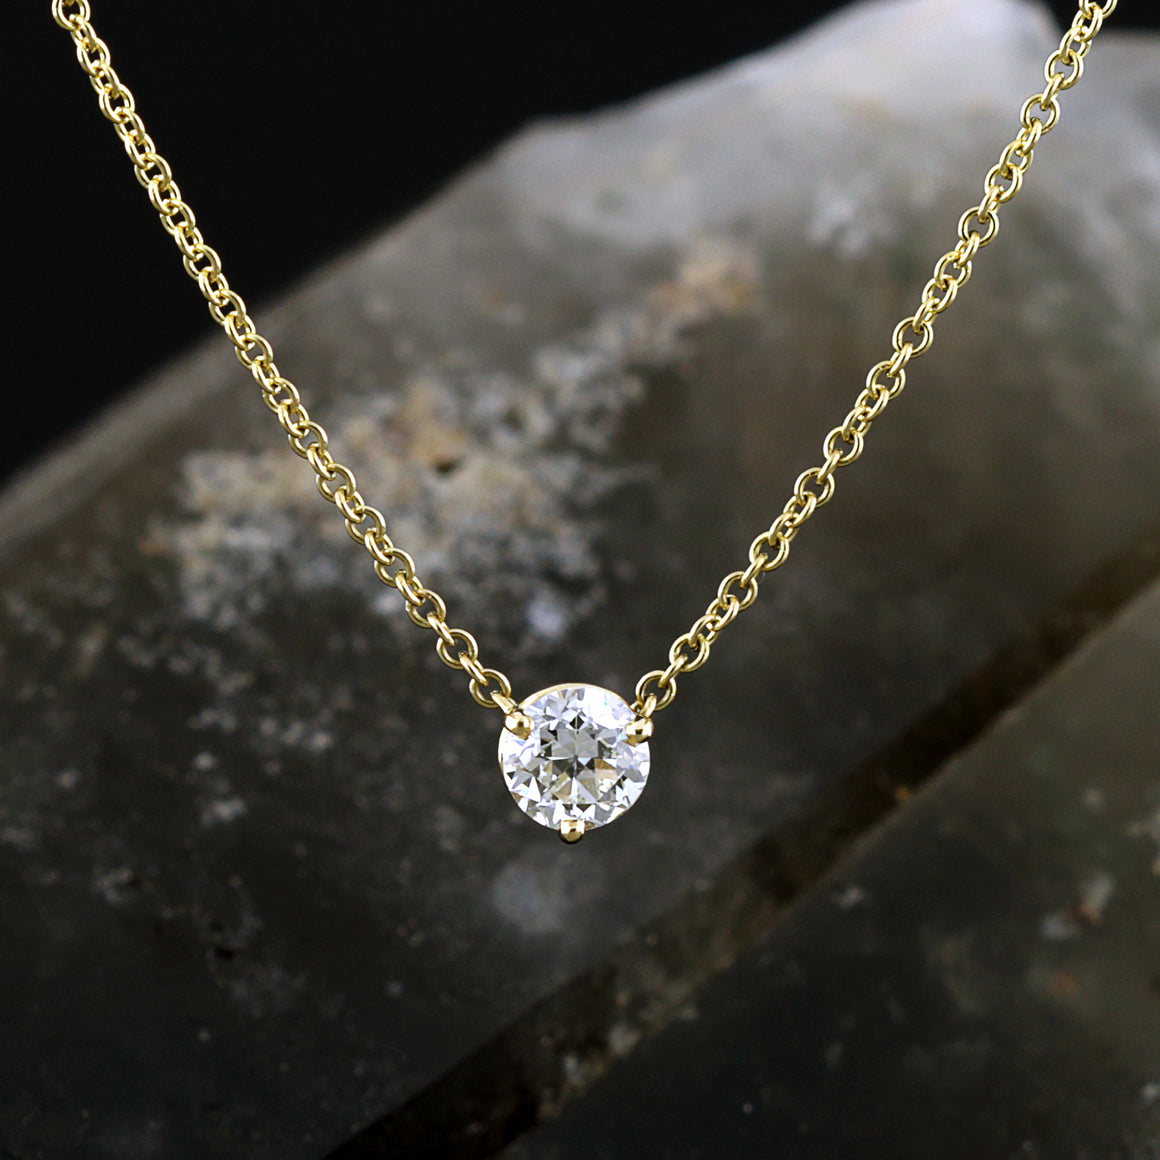 Diamond Solitaire Pendant in Yellow Gold - 1/2 carat